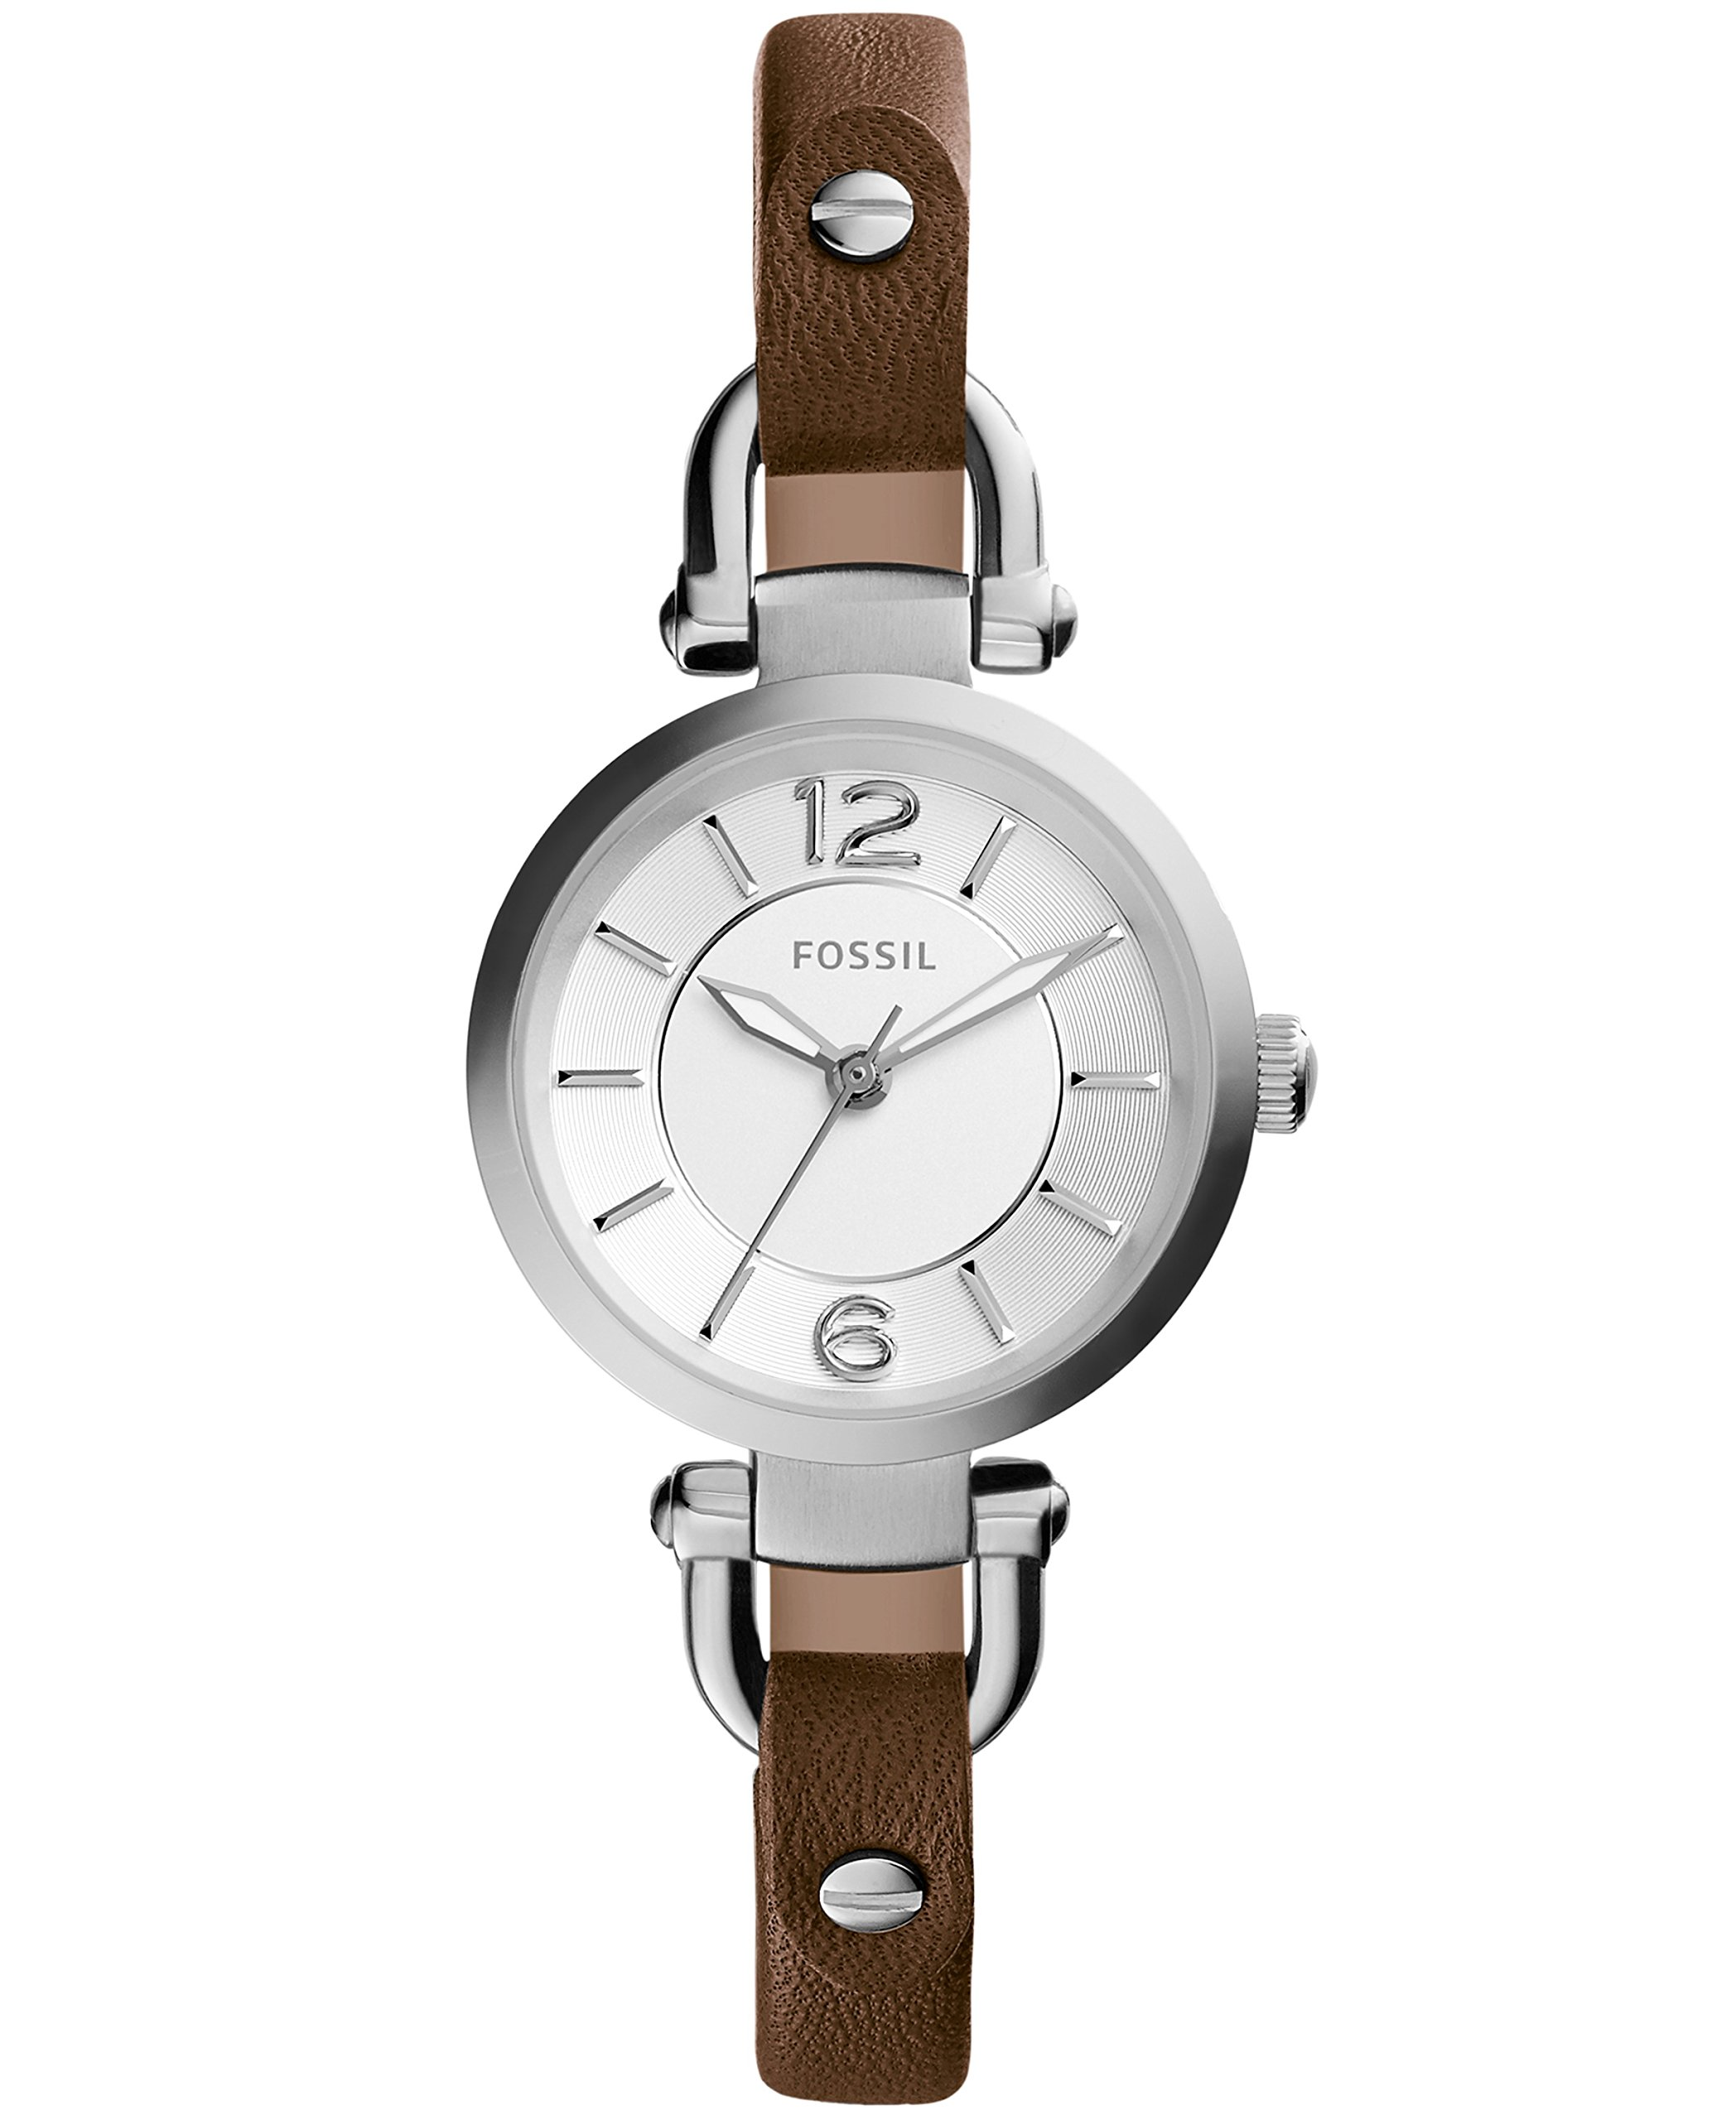 ویکالا · خرید  اصل اورجینال · خرید از آمازون · Fossil Women's Mini Georgia Quartz Stainless Steel and Leather Casual Watch, Color: Silver, Brown (Model: ES3861) wekala · ویکالا